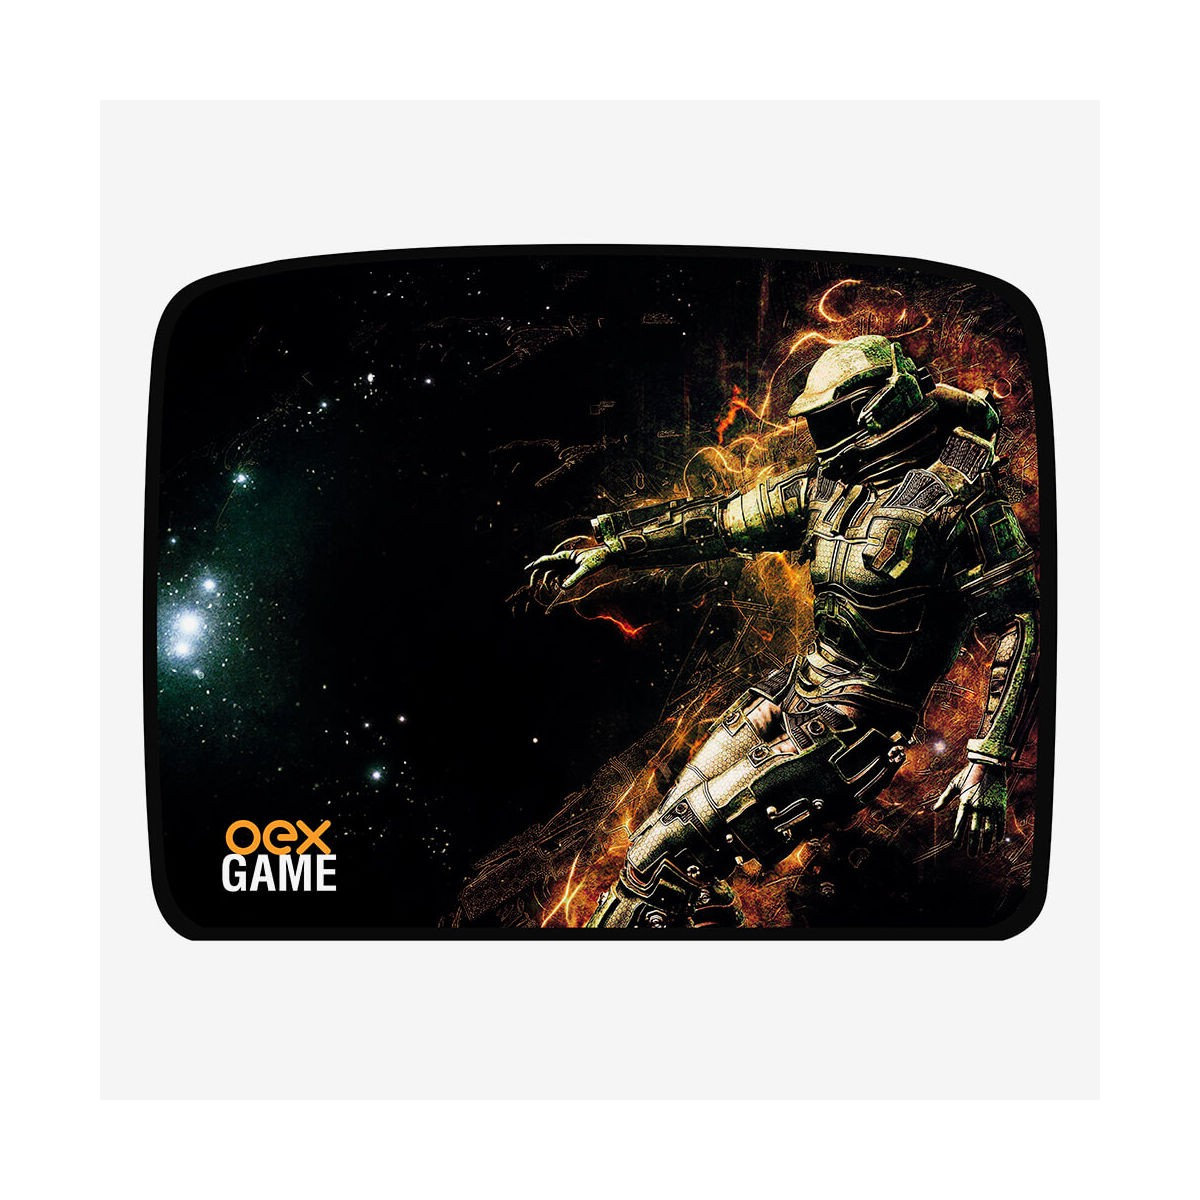 Mouse Pad Galaxy Oex Game MP 304 Profissional